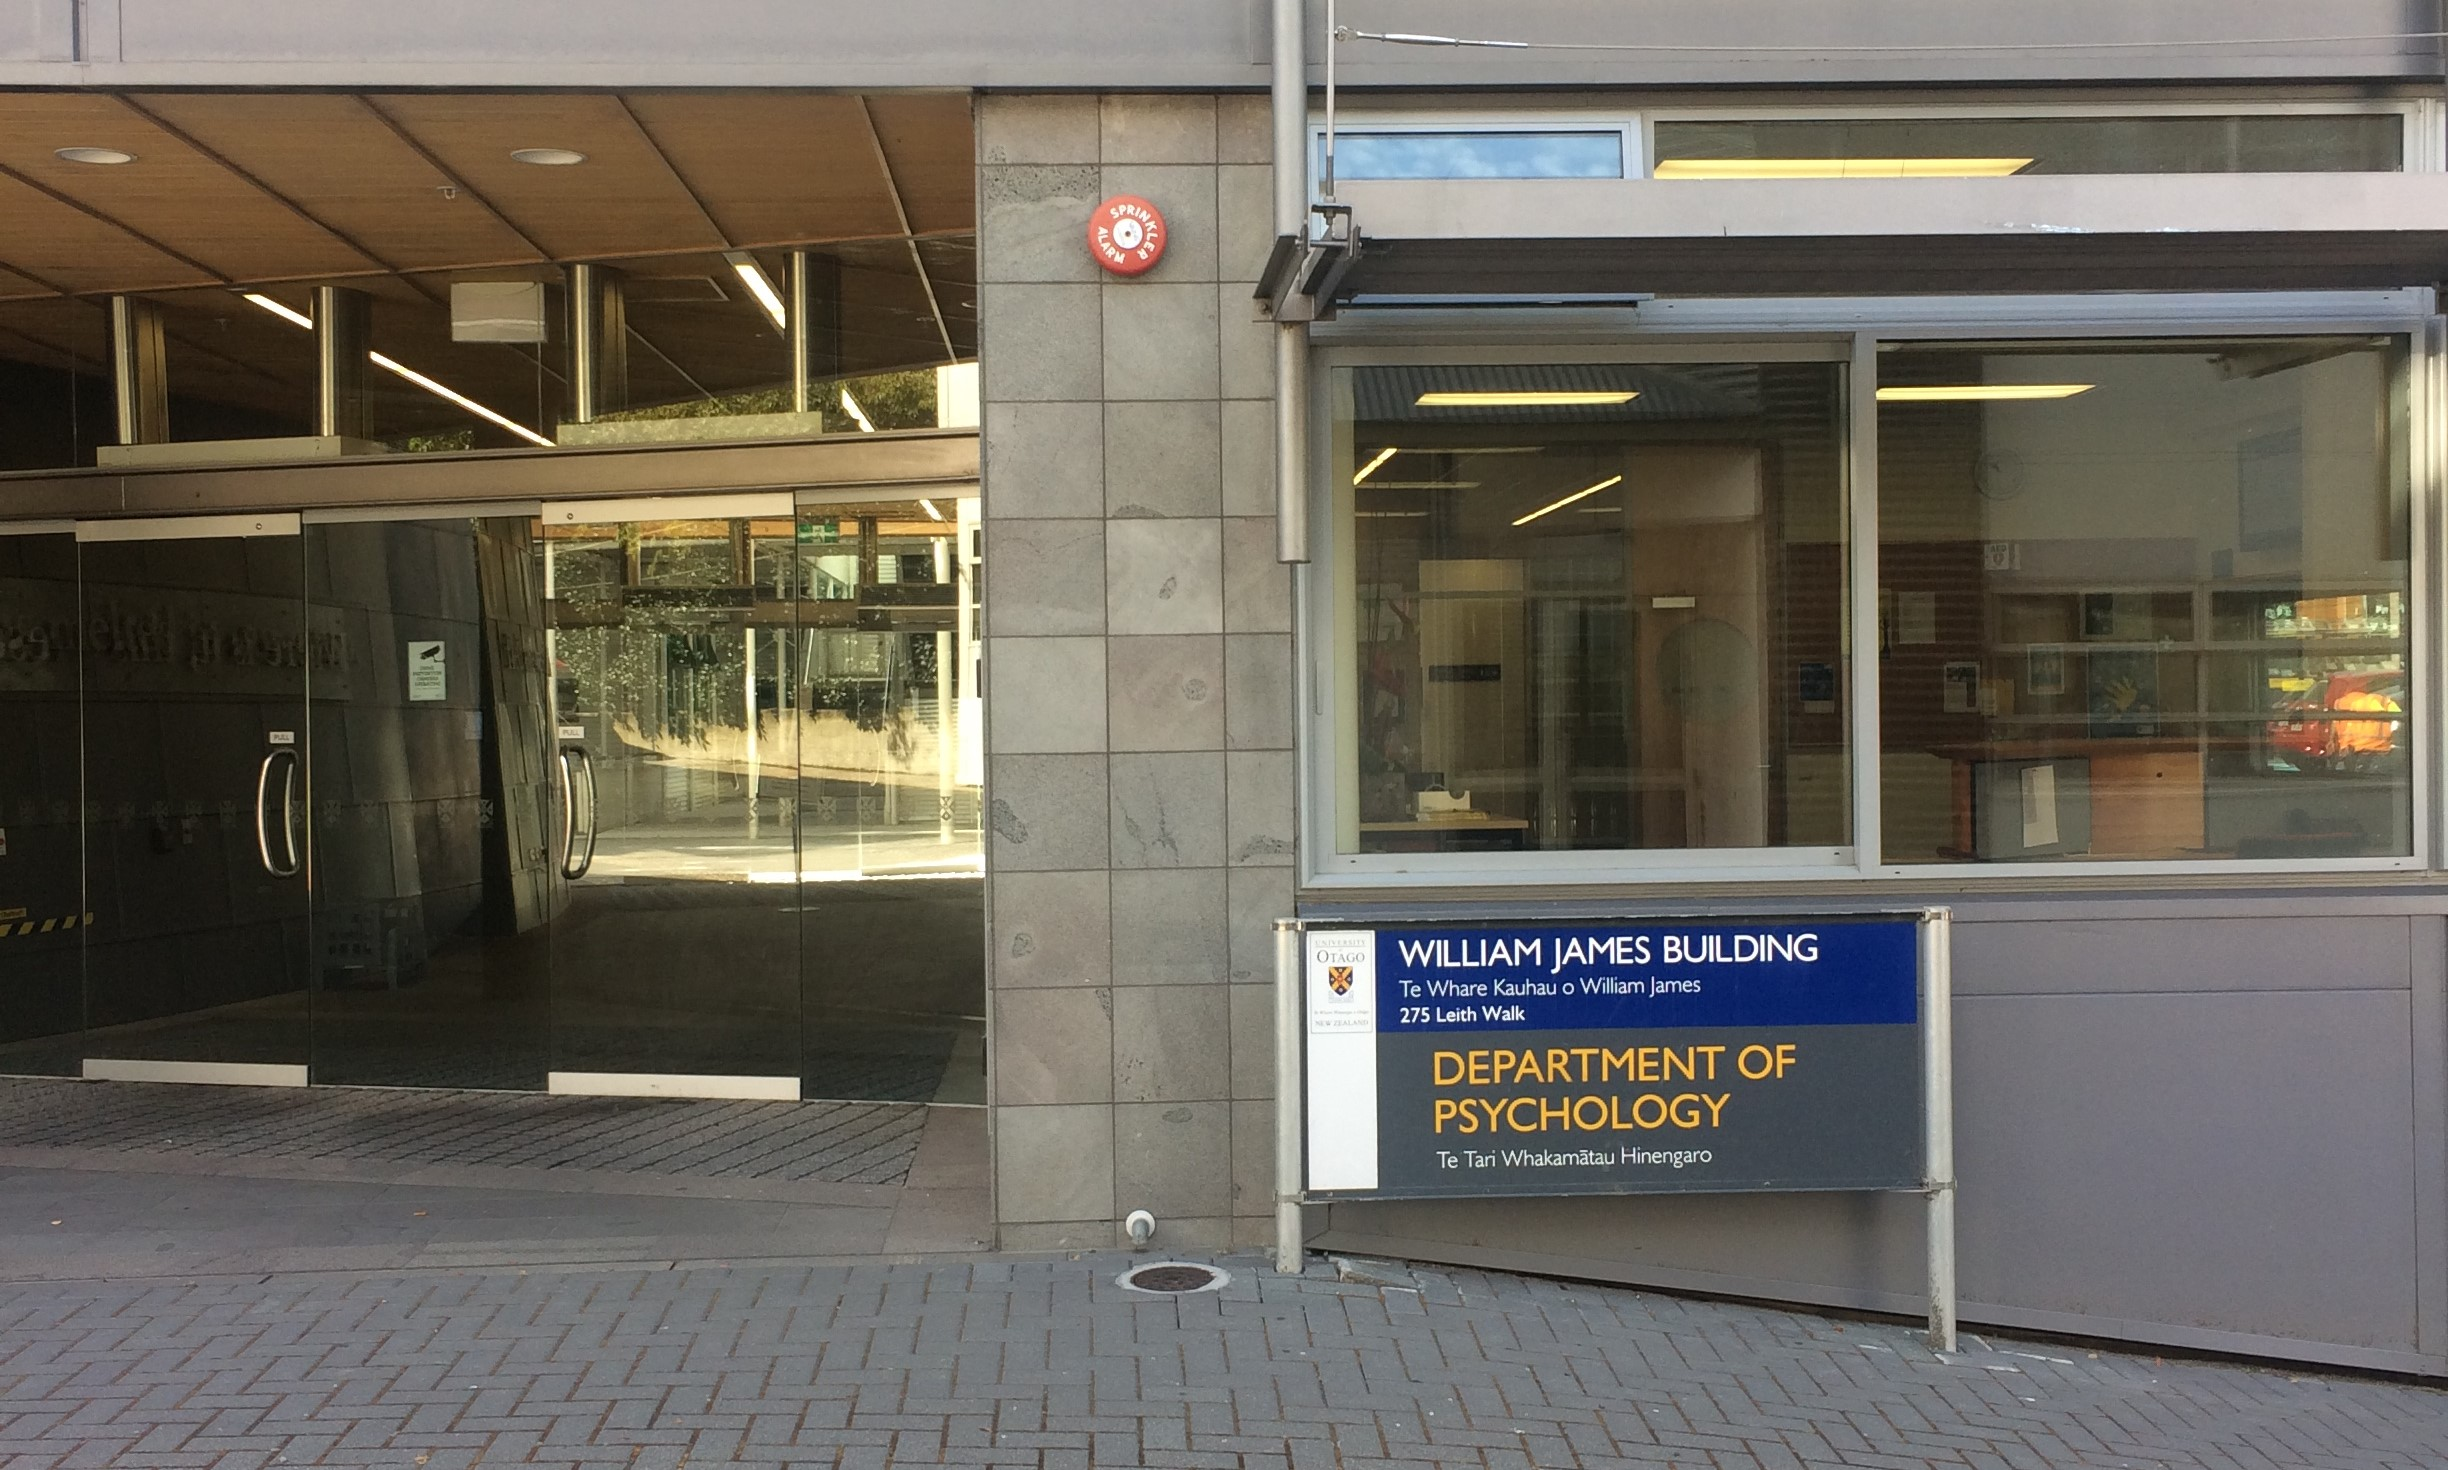 Photo of the entrance to the William James building